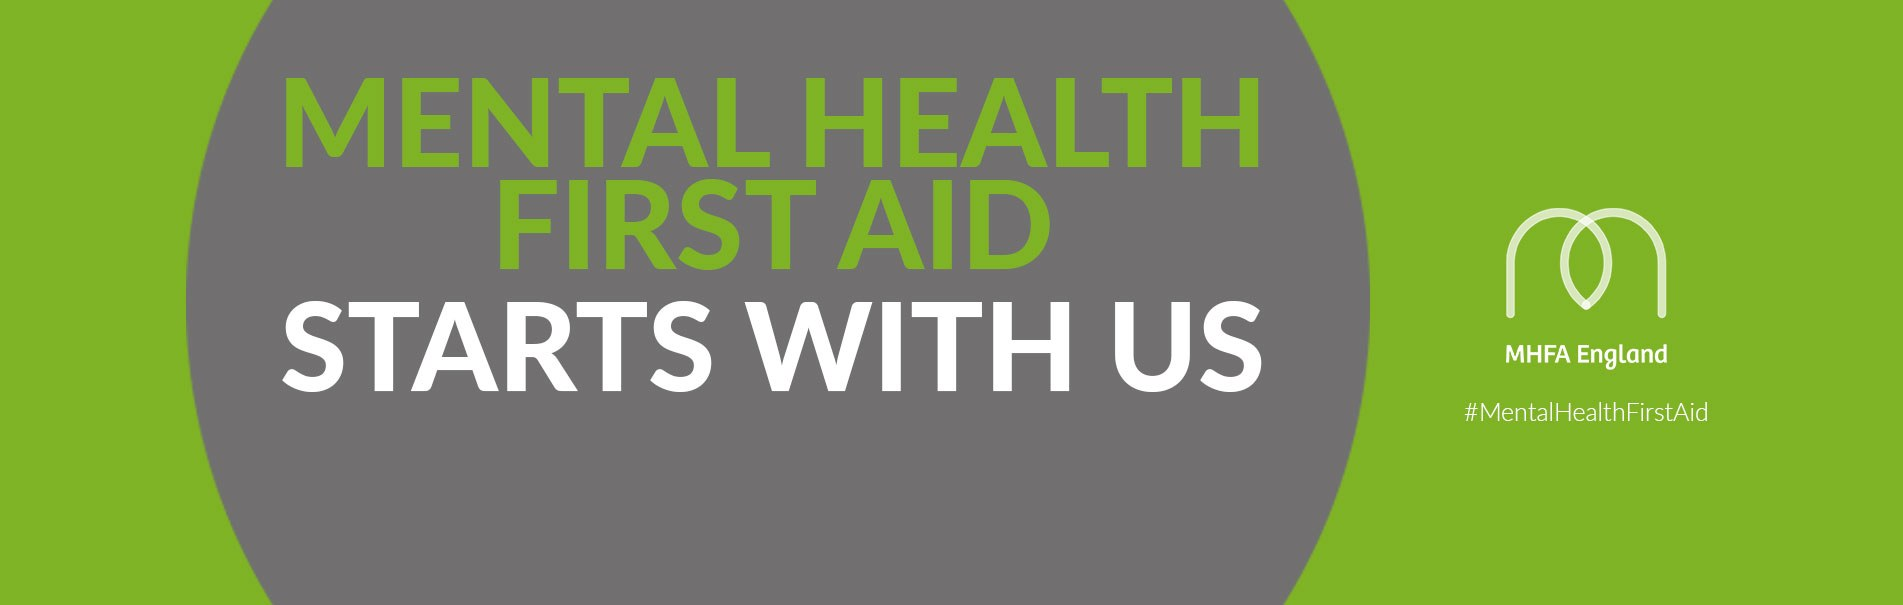 Mhfa Starts With Us